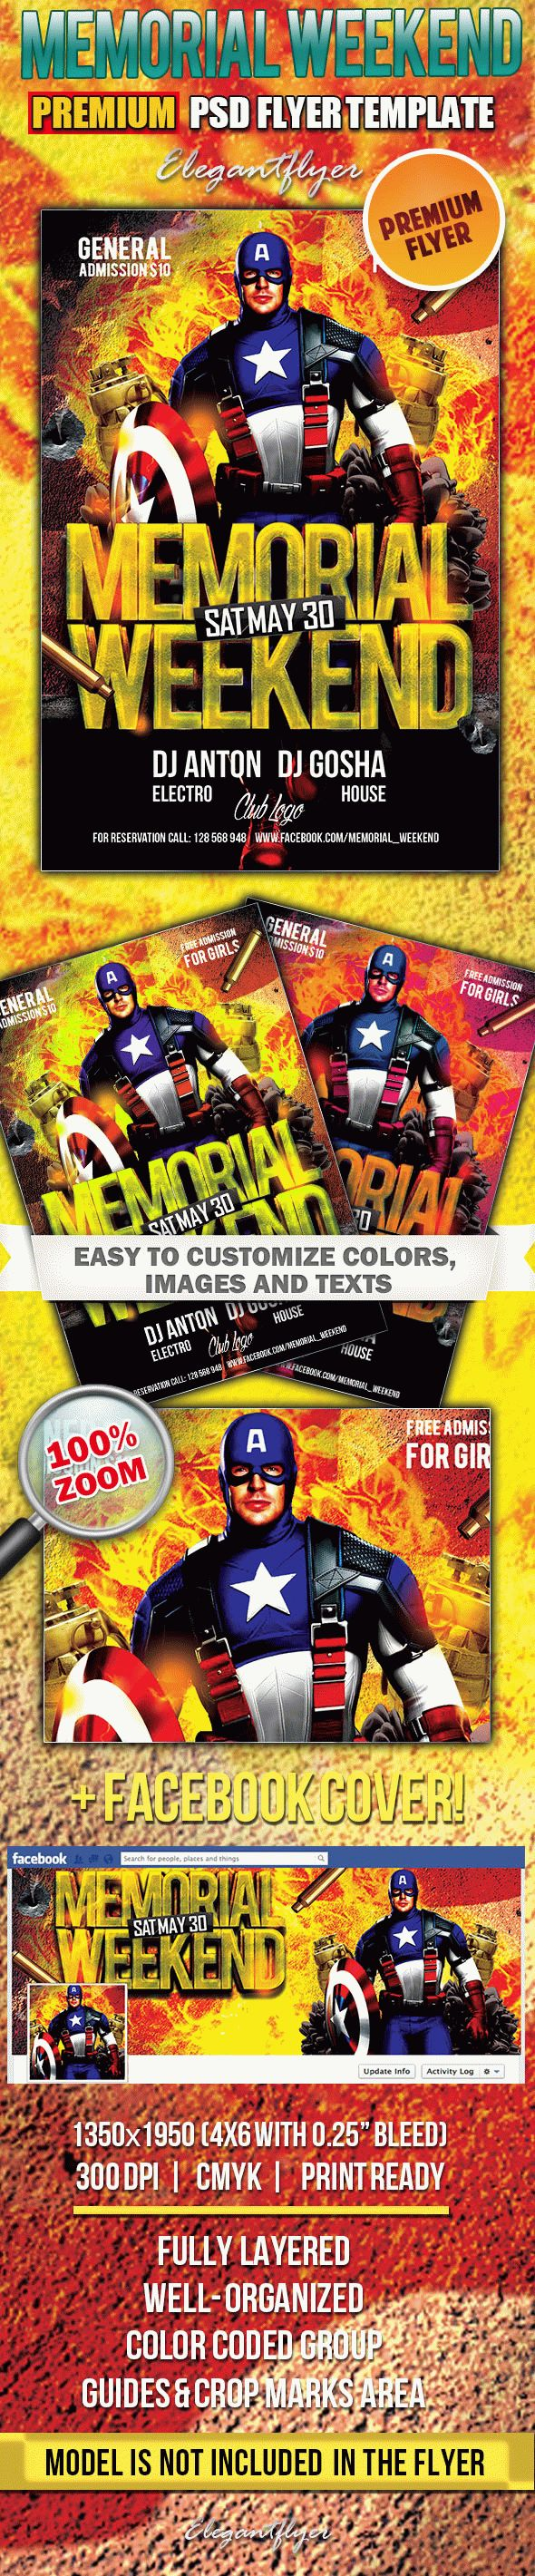 Memorial Weekend – Premium Club flyer PSD Template + Facebook Cover